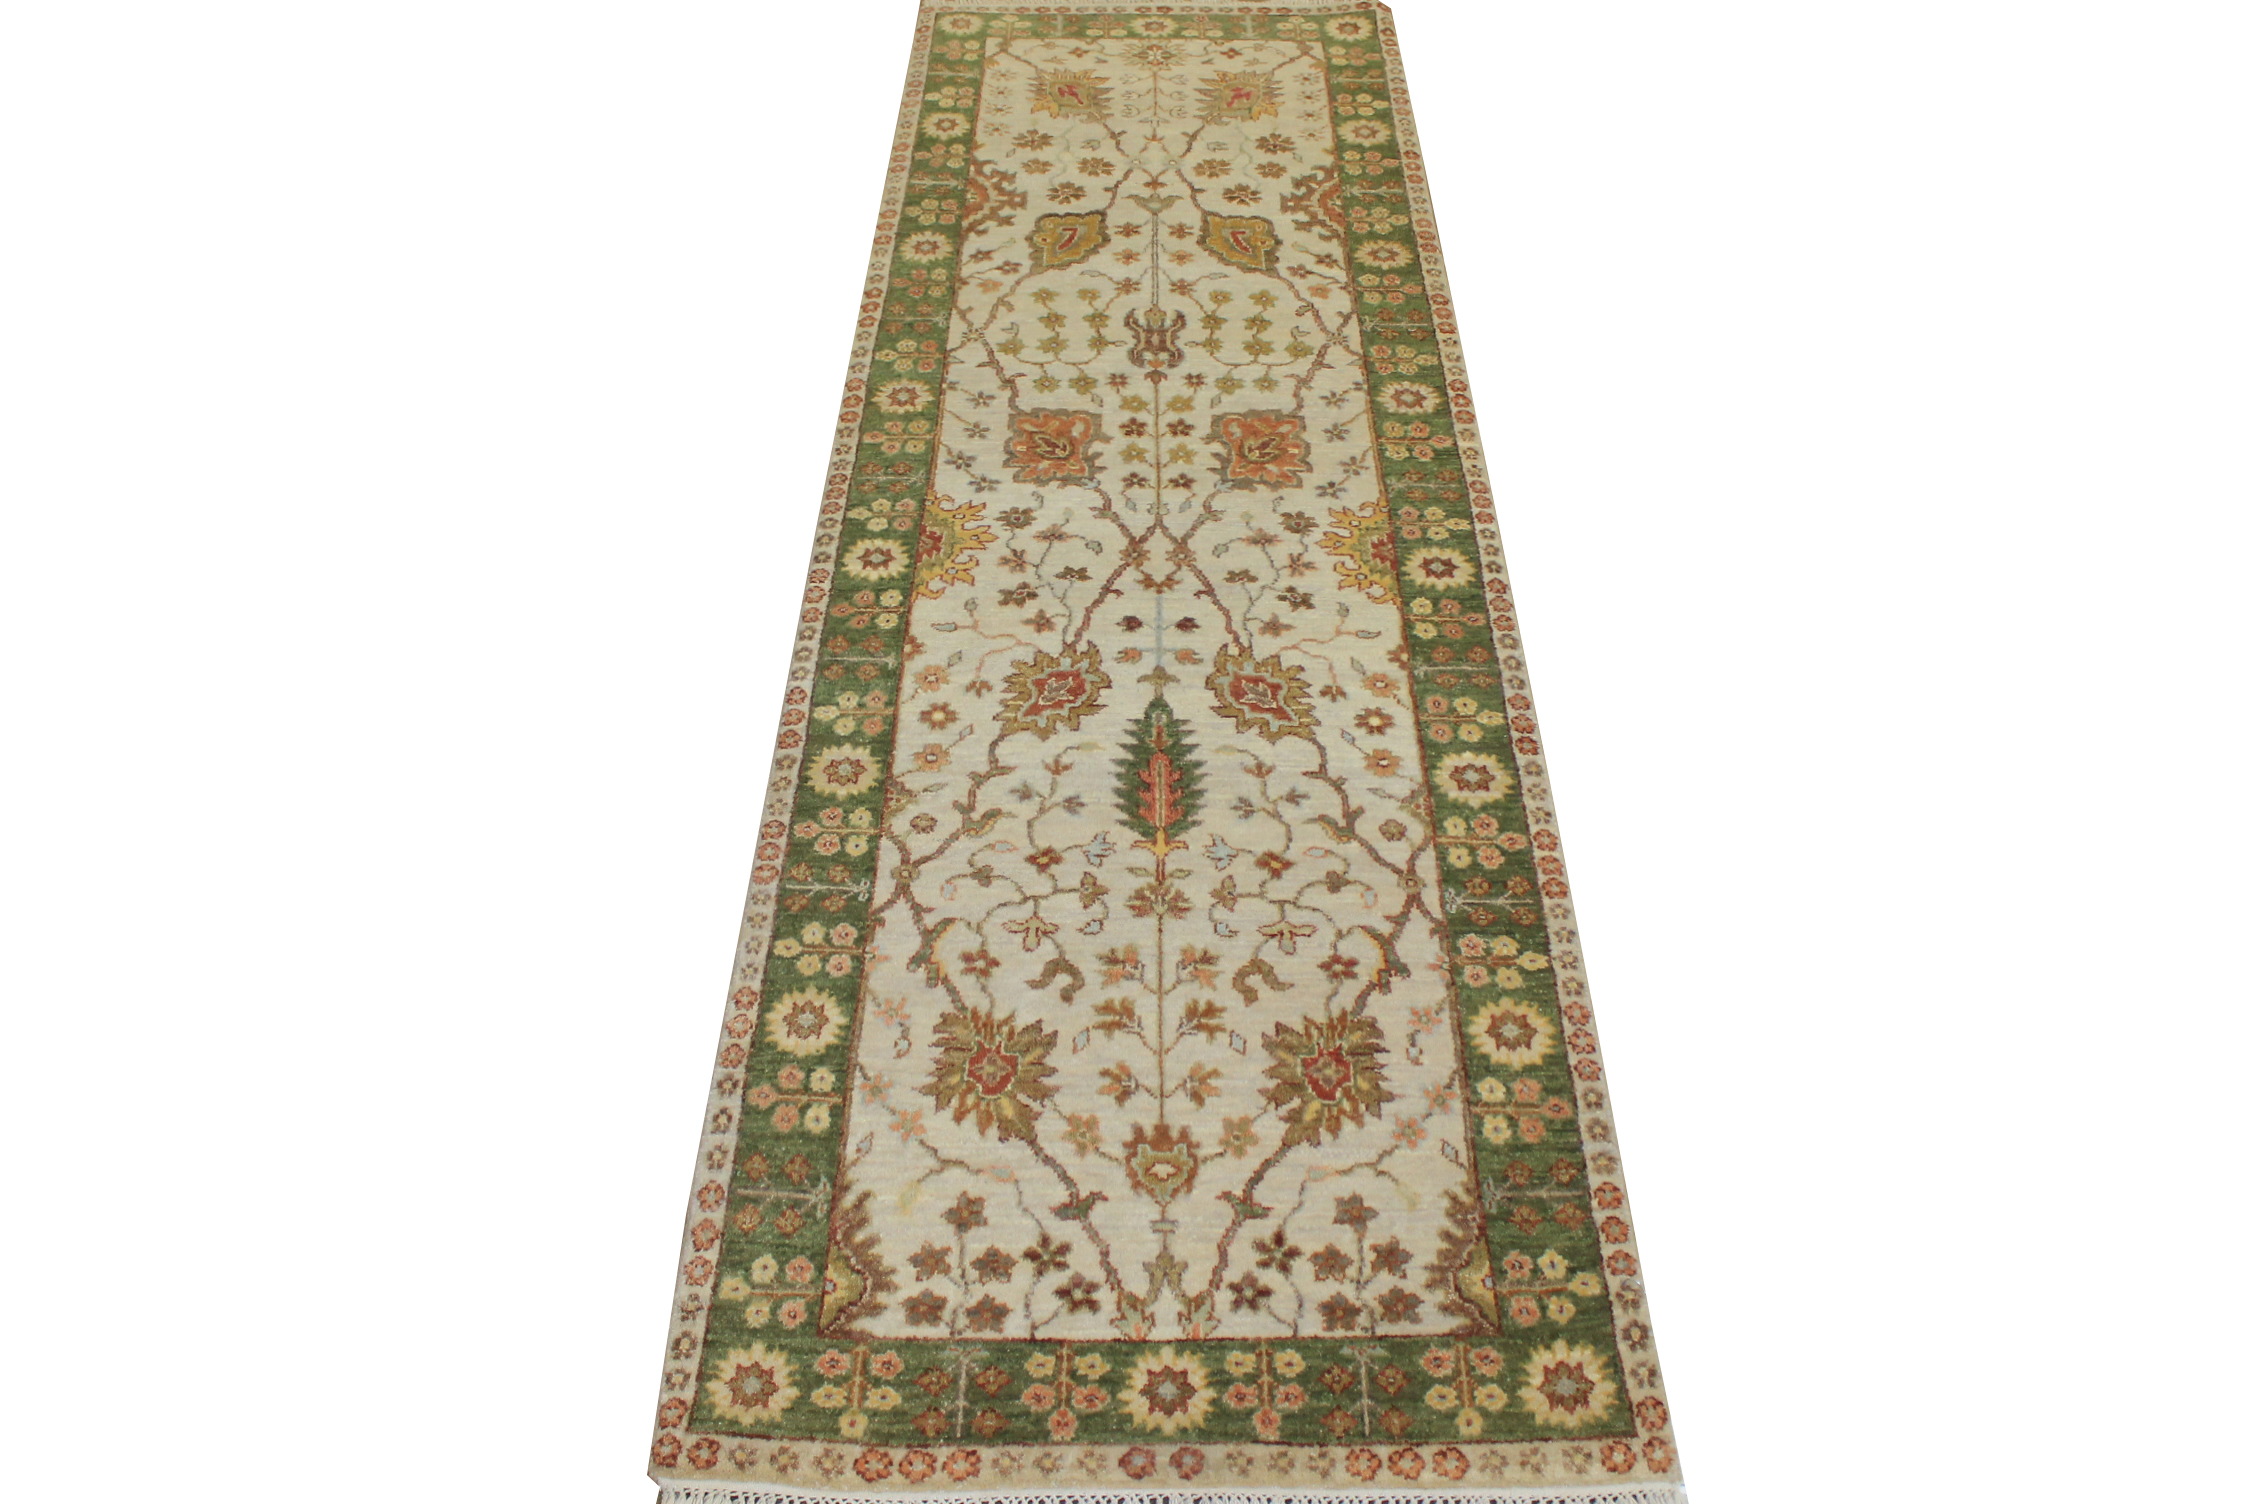 8 Runner Traditional Hand Knotted Wool Area Rug - MR19851